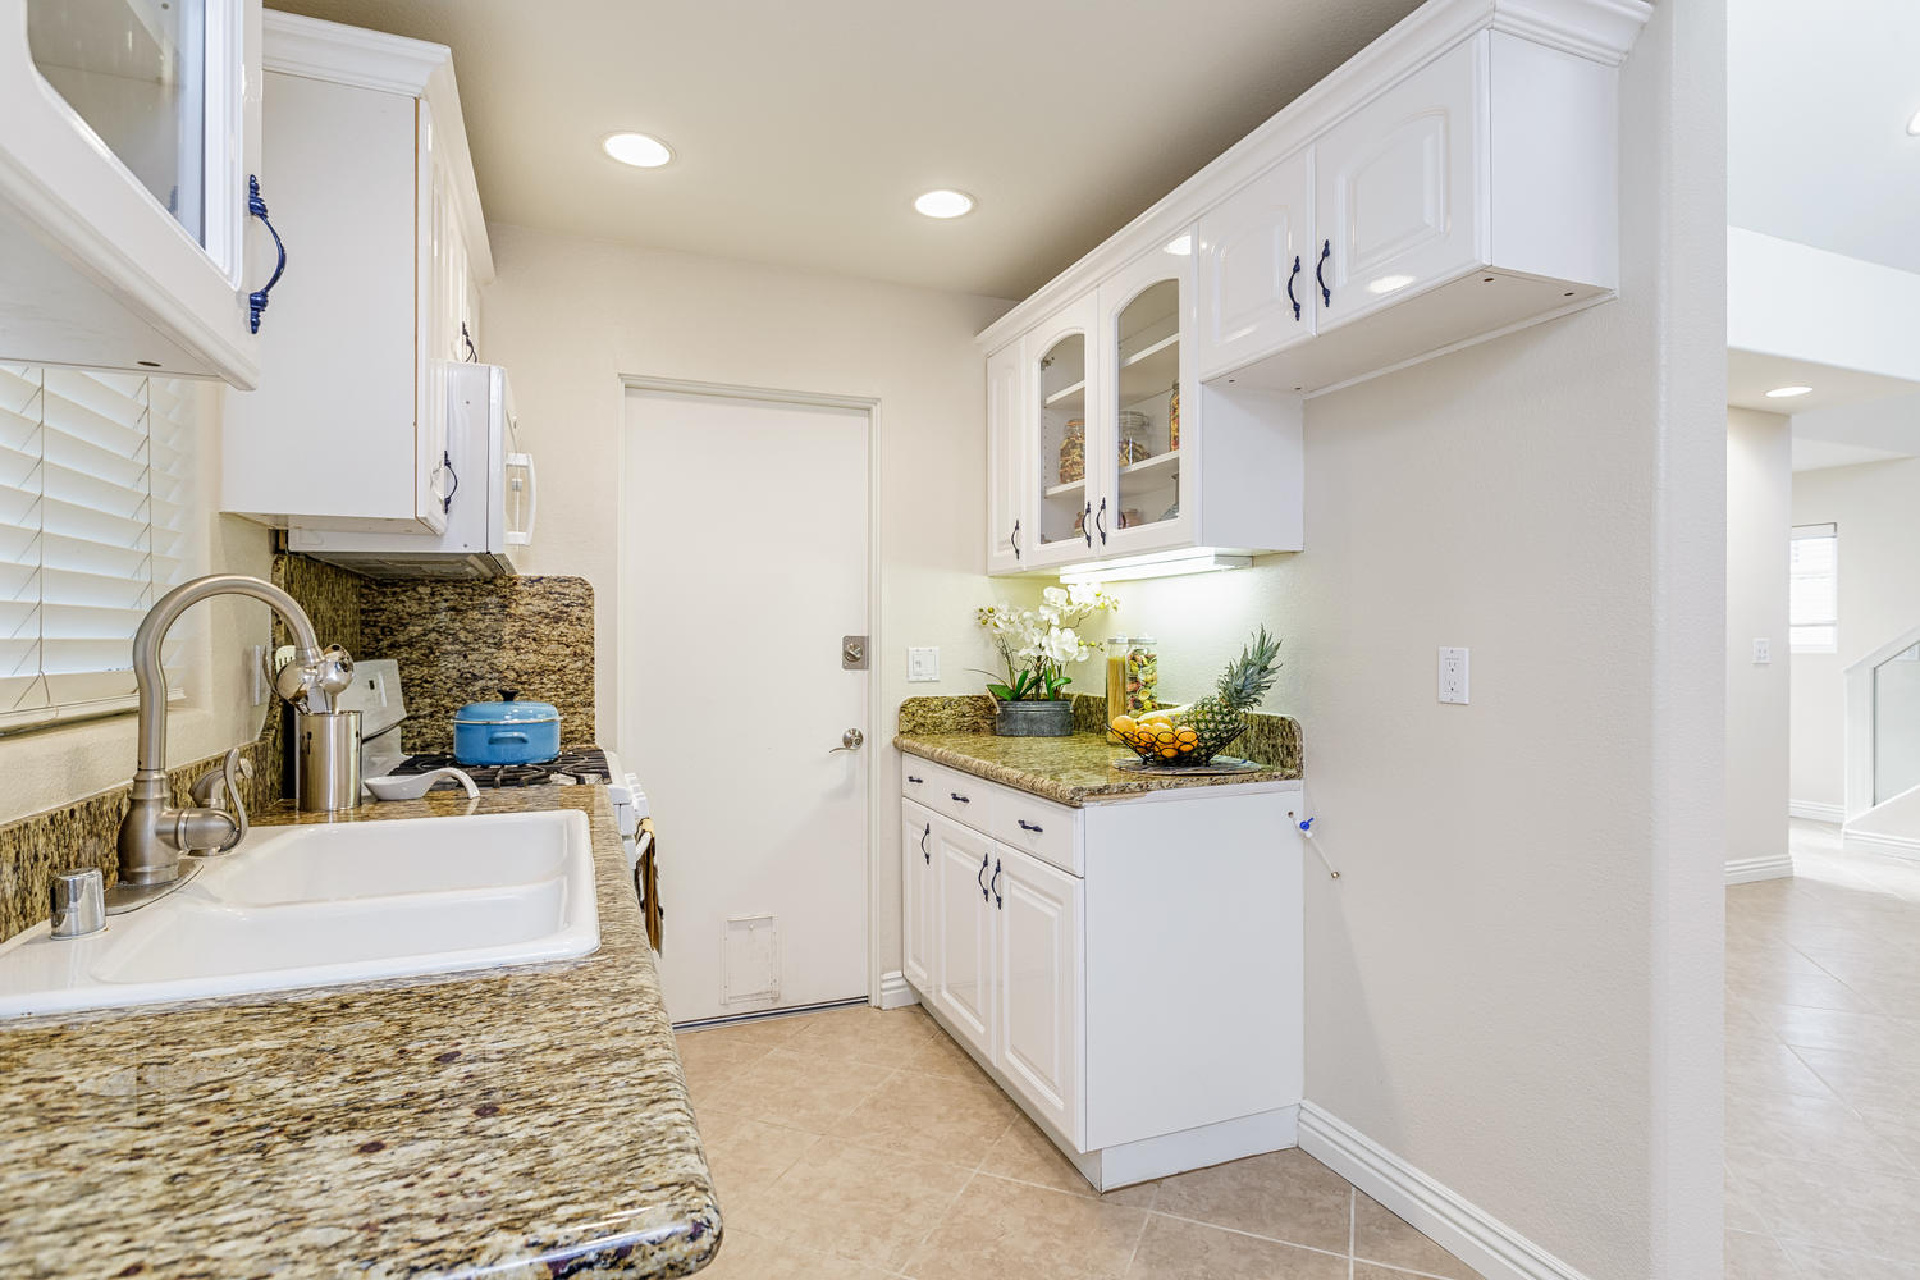 https://addressrealestate.com/media/images/blogs/38/2/b_6-1408-ocean-dr-oxnard-ca-93035-mls-size-006-18-kitchen-1500x1000-72dpi.jpg